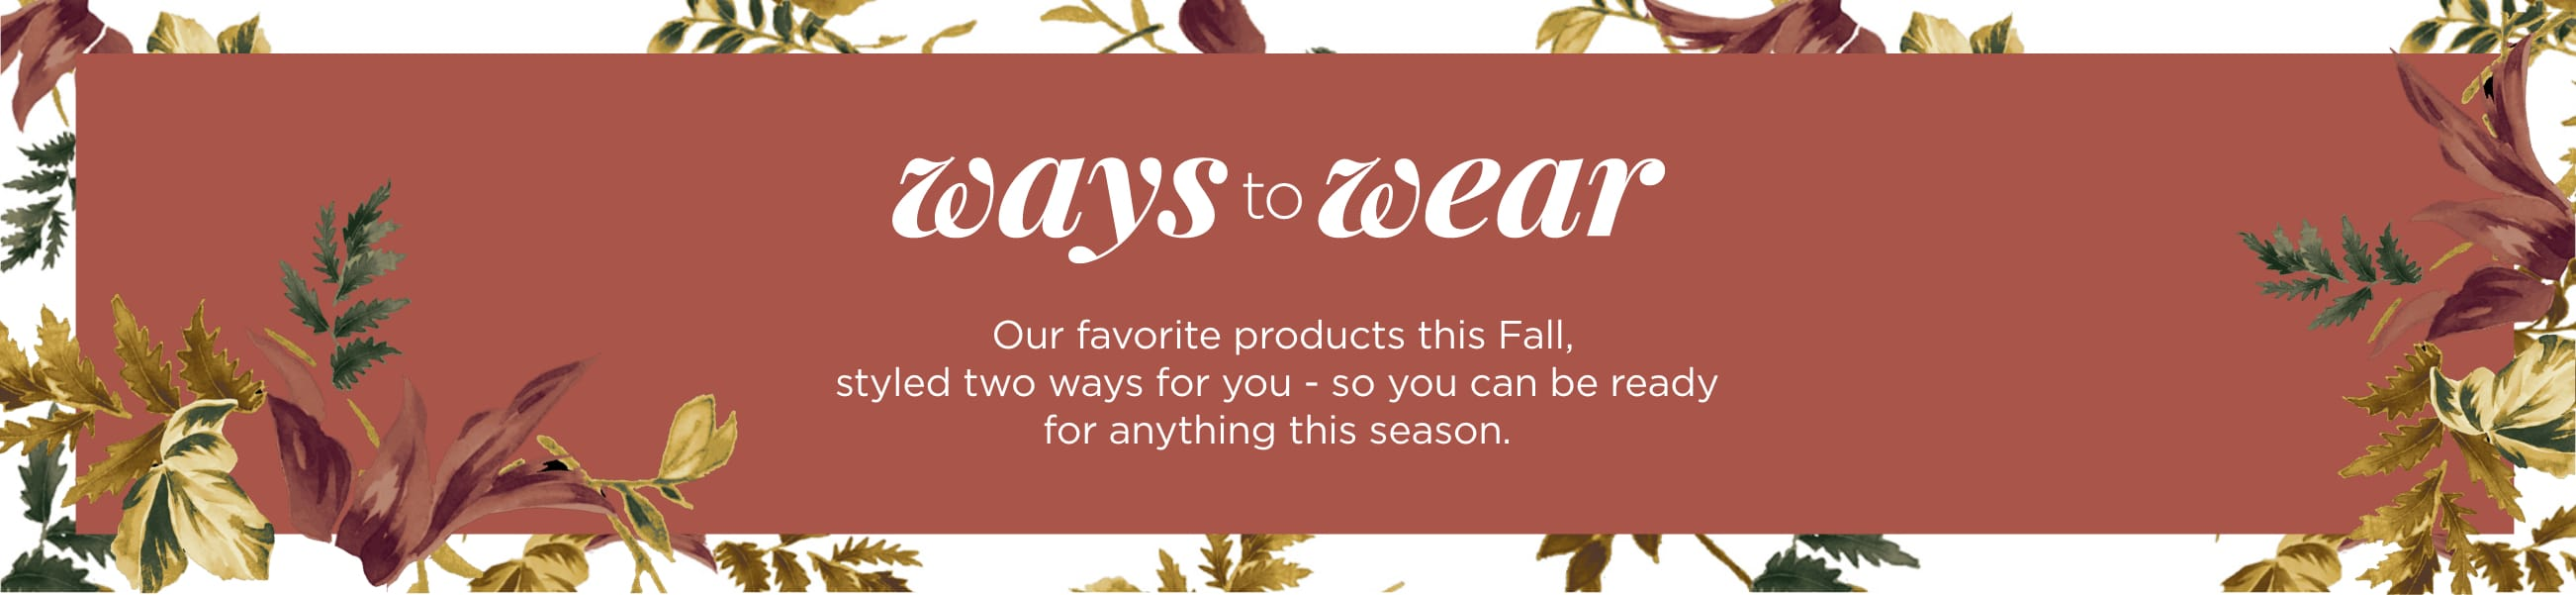 Ways-to-Wear. Our favorite products this Fall, styled two ways for you — so you can be ready for anything this season.